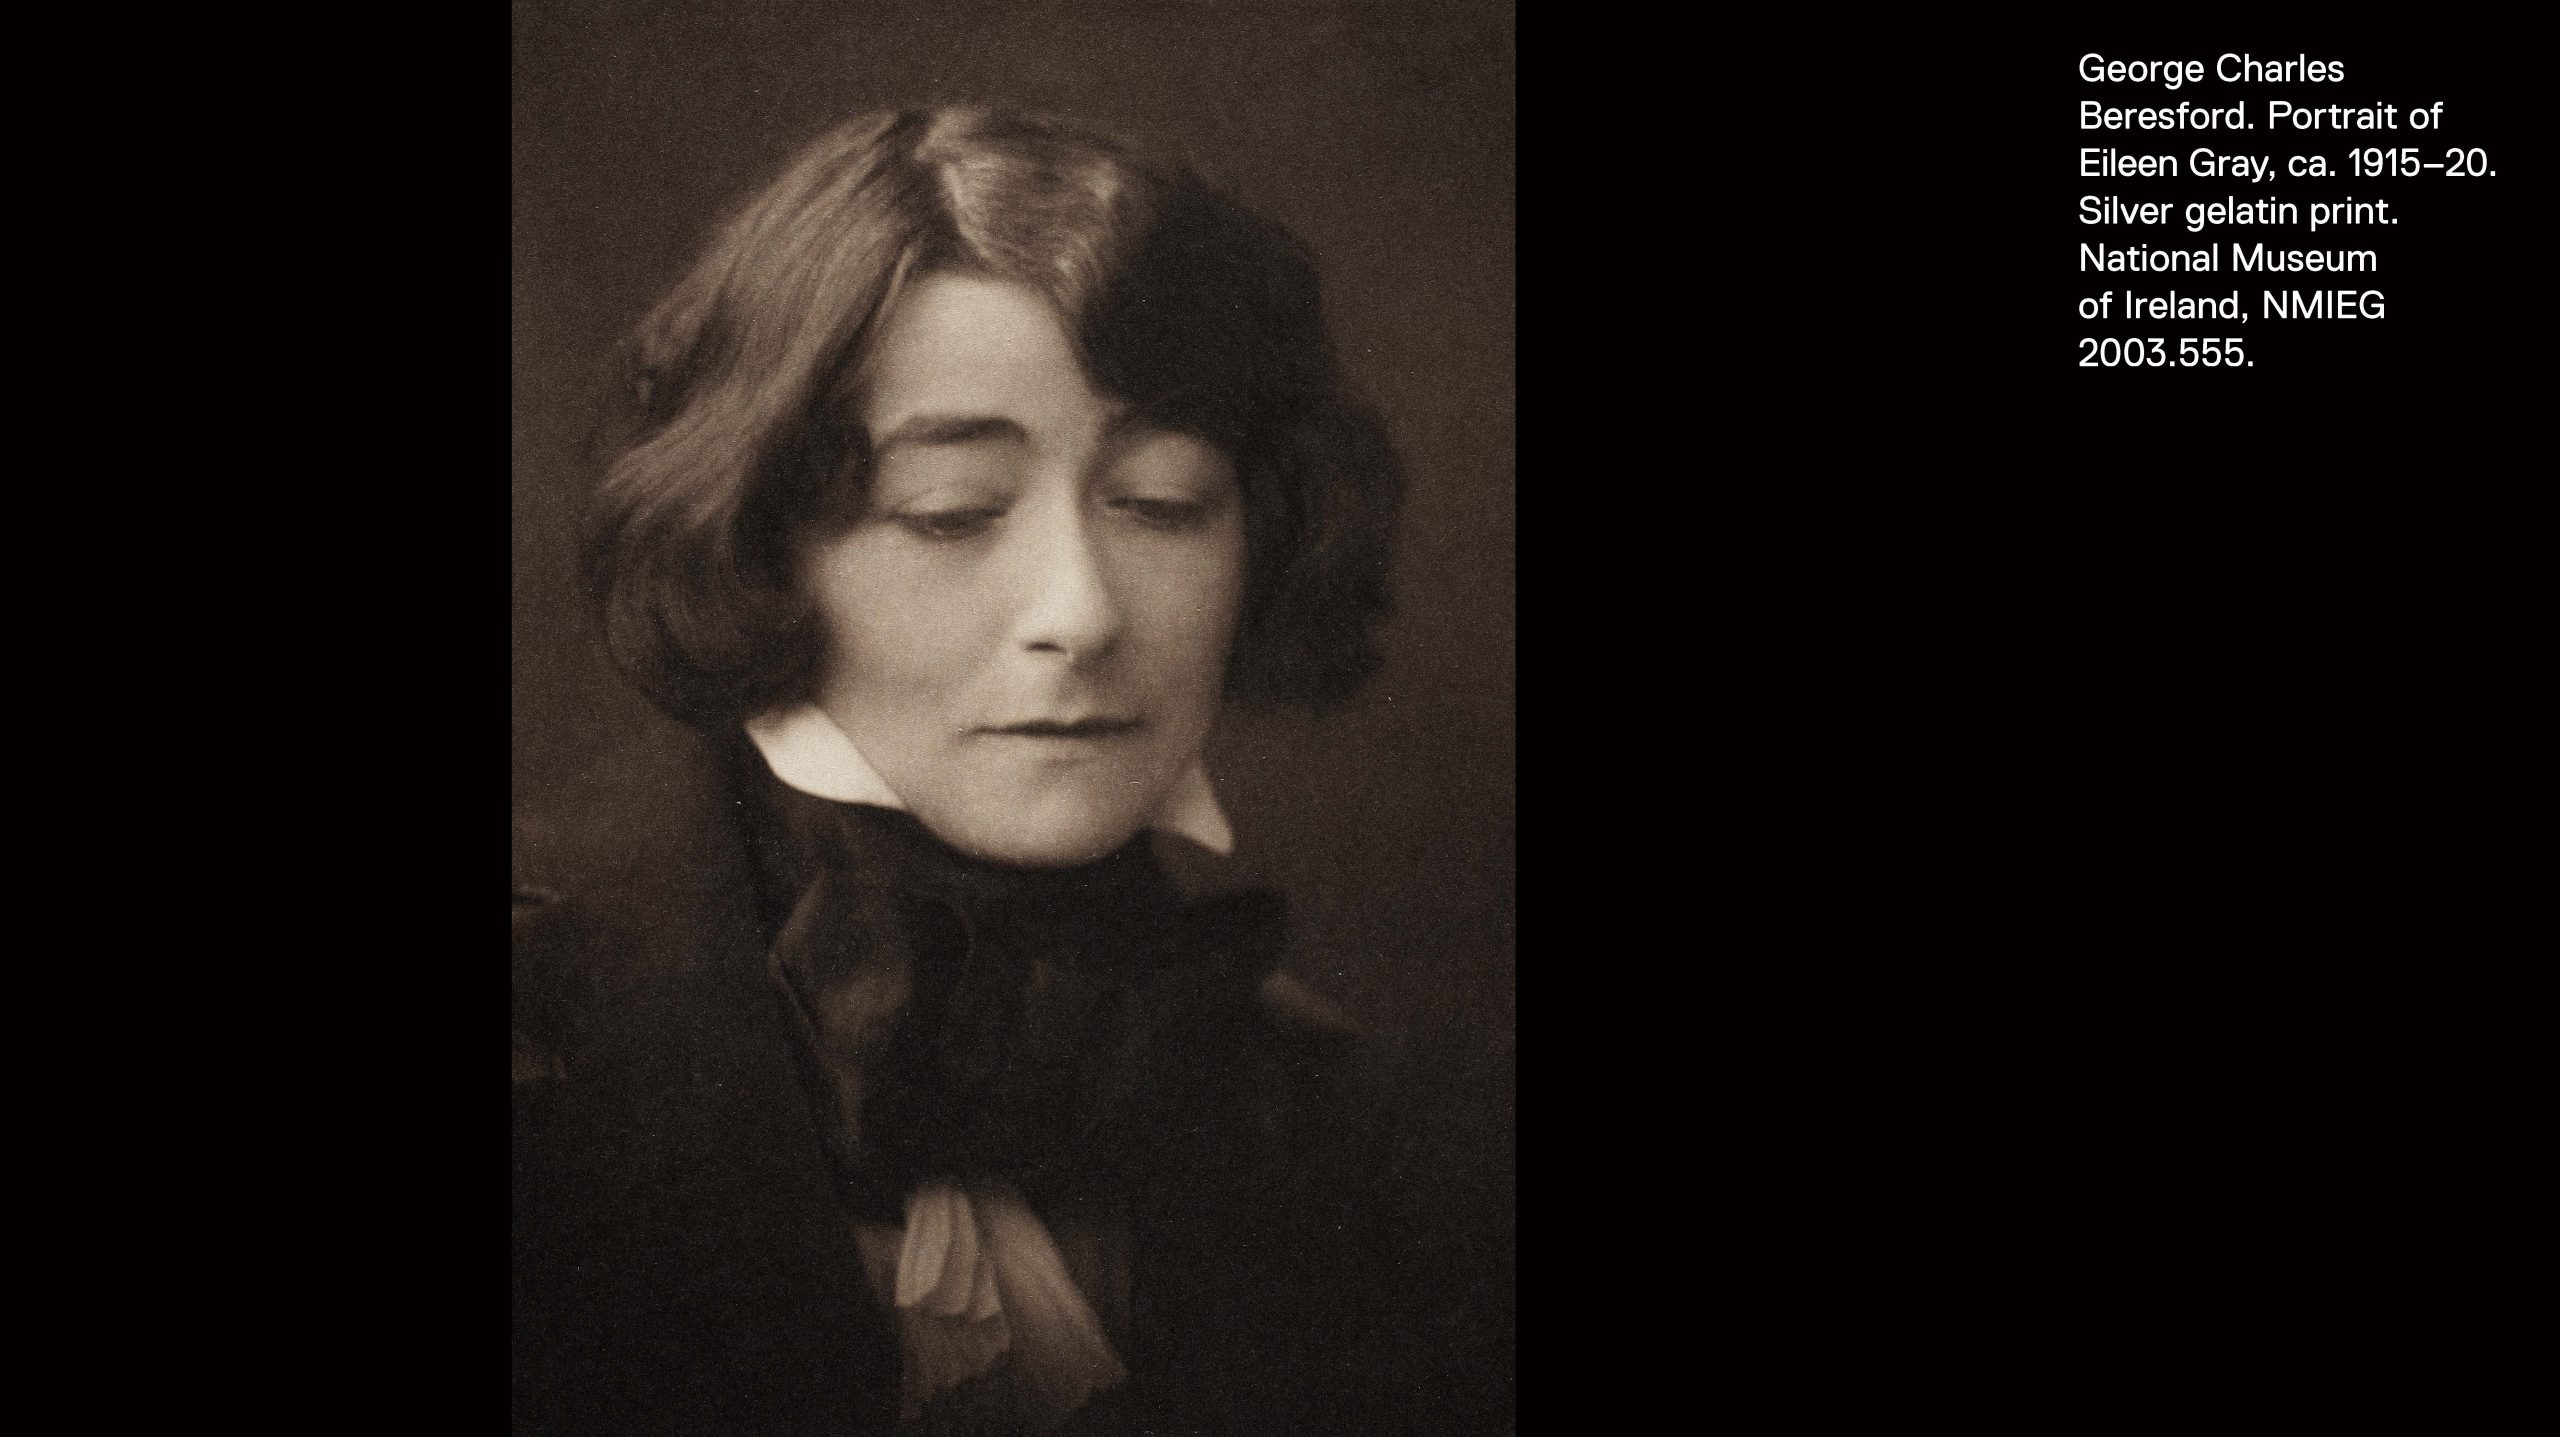 Bust-length portrait of Eileen Gray with chin-length cropped hair wearing a dark jacket, high collar, and large silk necktie.